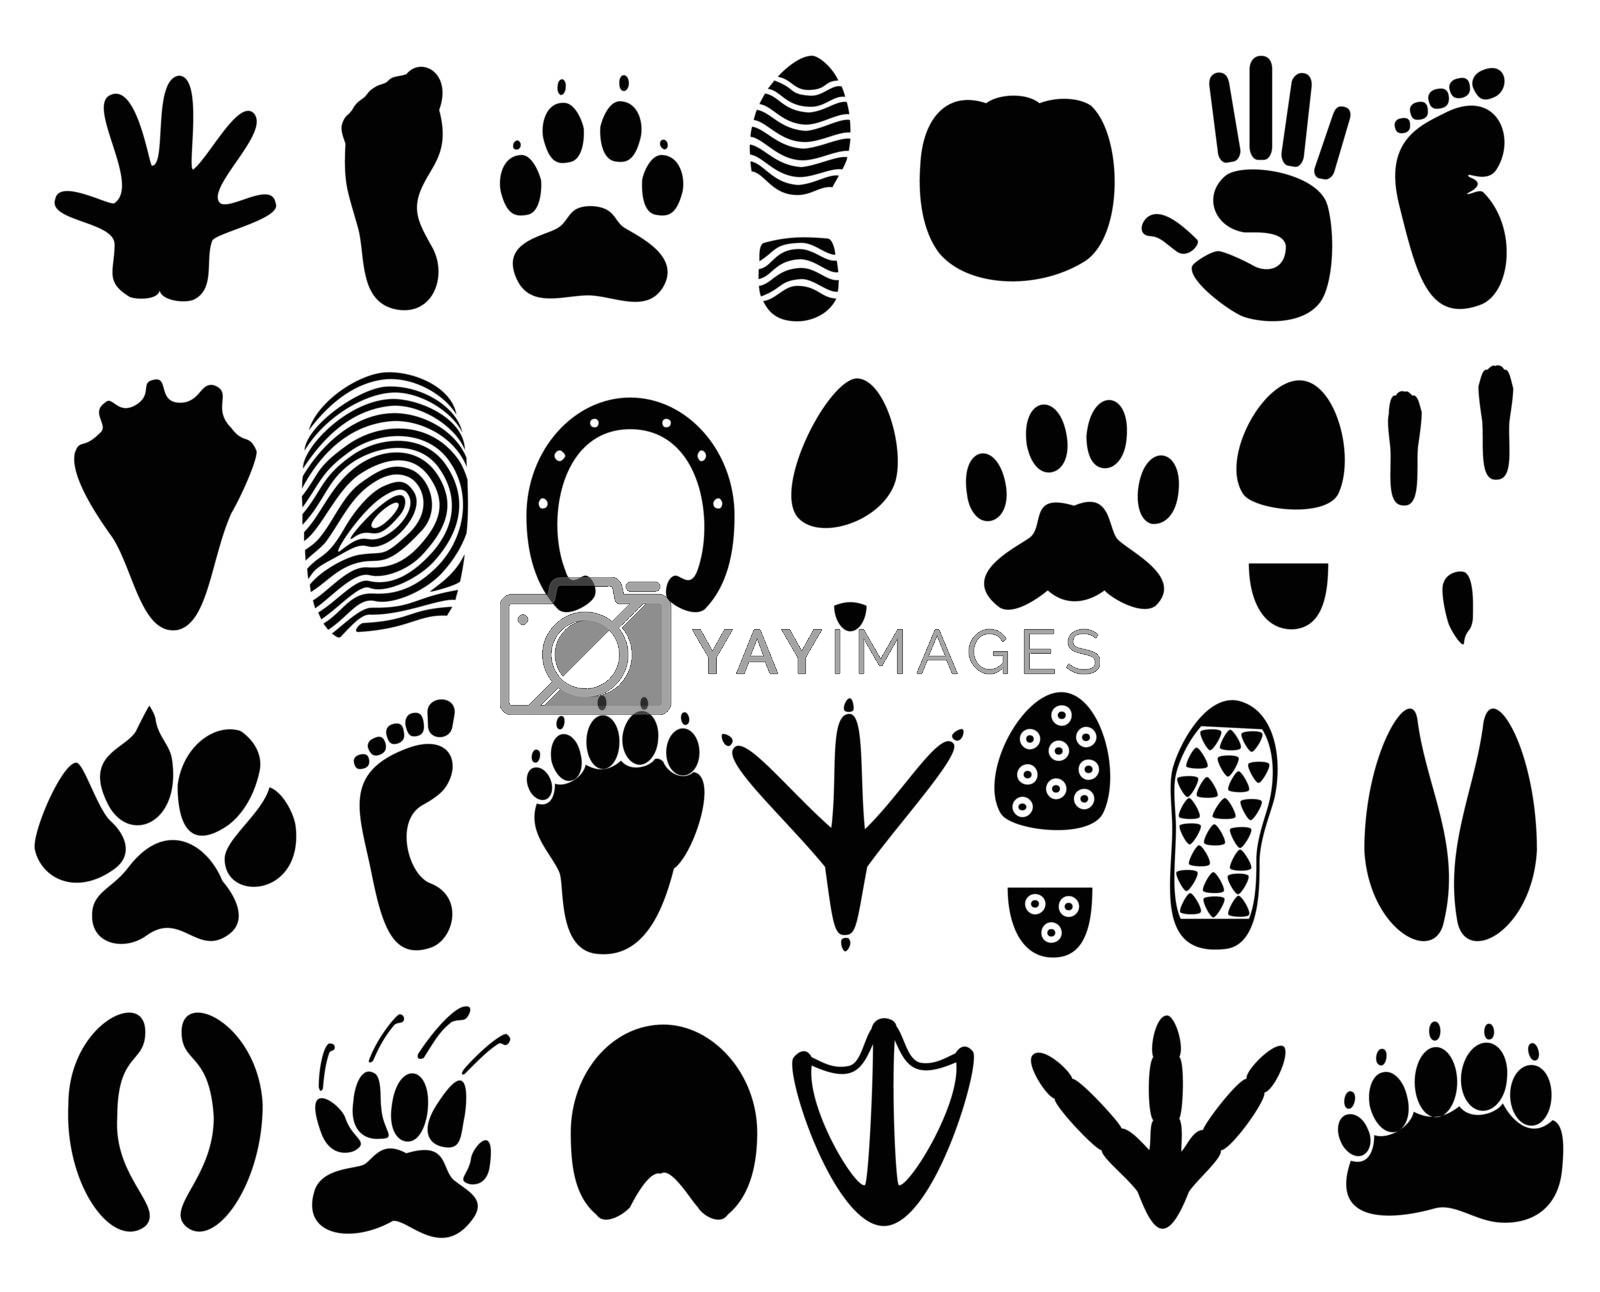 Traces of the person and animals. A vector illustration